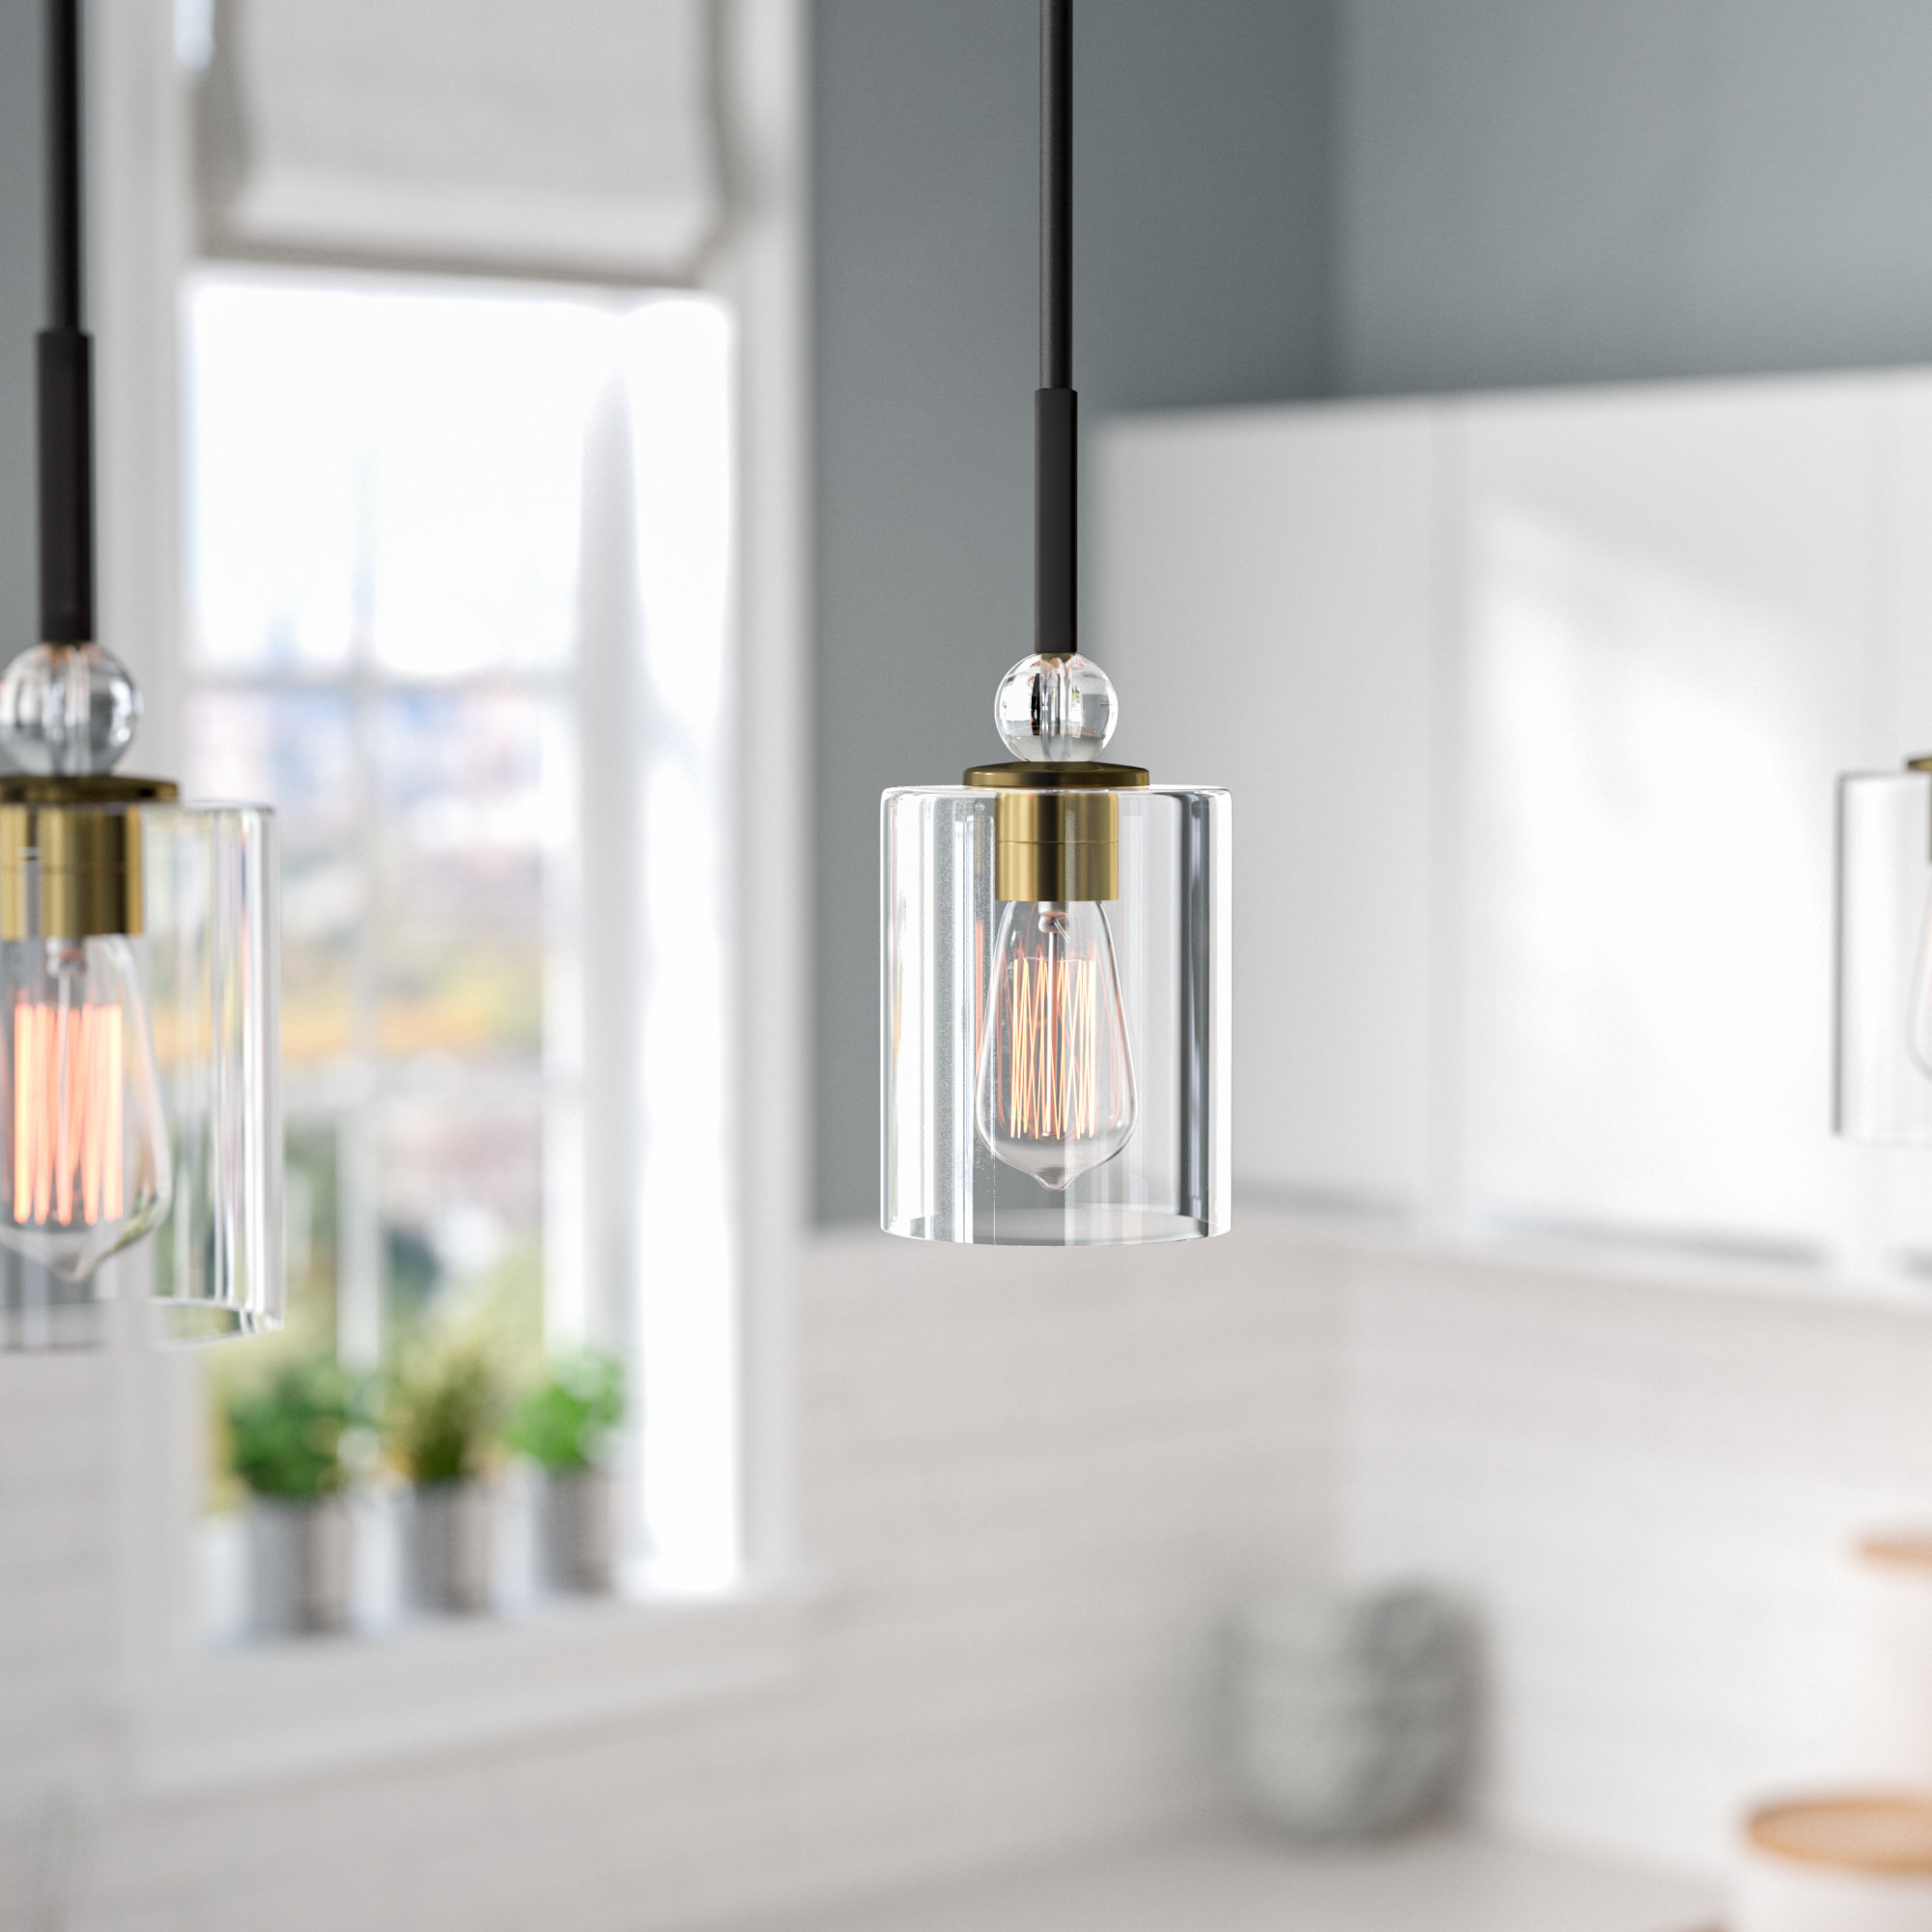 Jayce 1 Light Cylinder Pendants Within Most Up To Date Friedman 1 Light Single Cylinder Pendant (View 11 of 20)